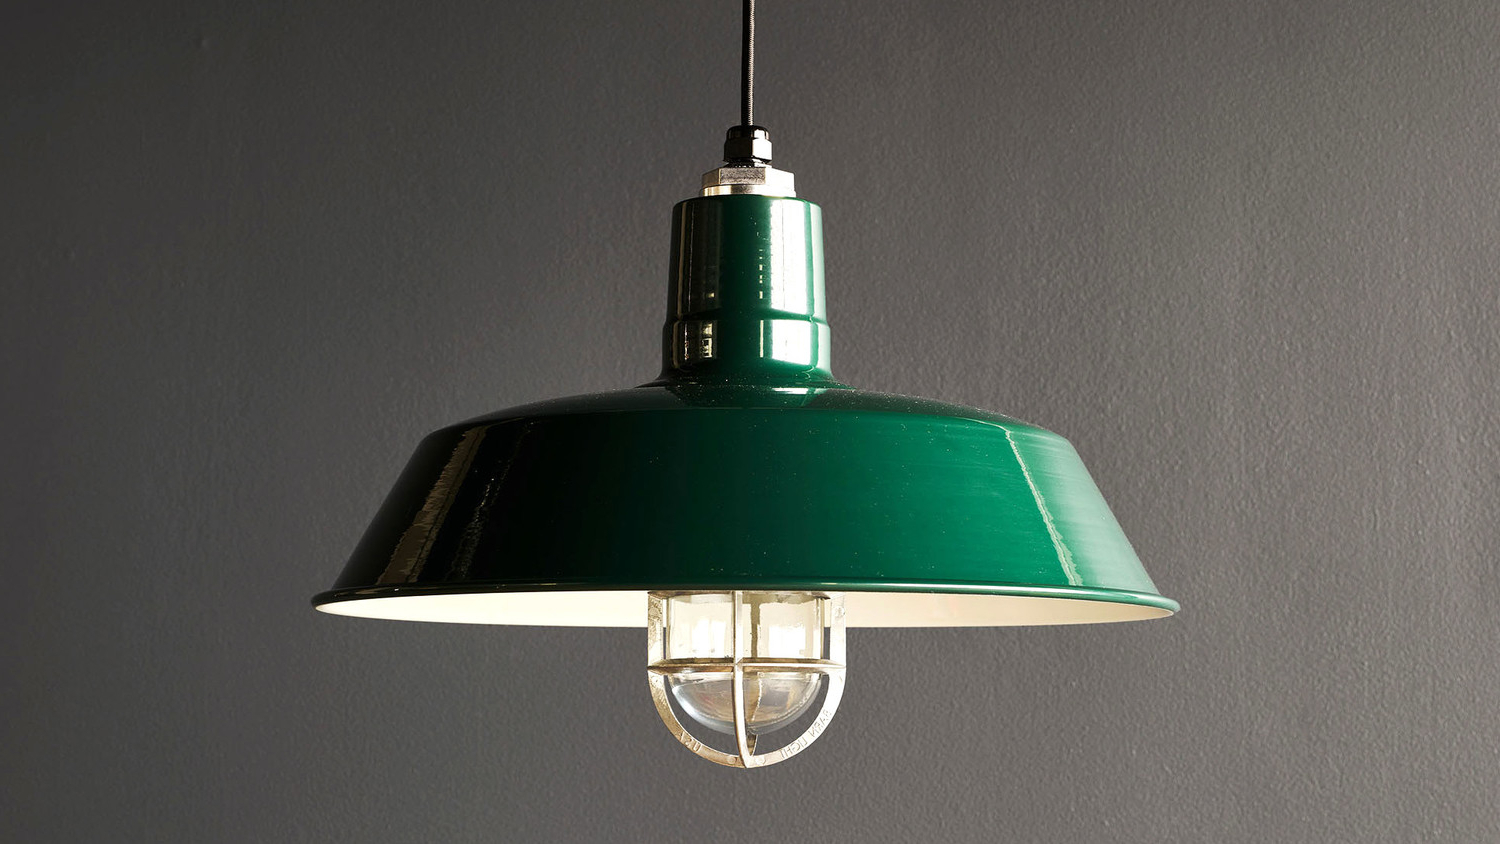 New Deals On Rossi 1 Light Pendant, Chrome In Most Popular Rossi Industrial Vintage 1 Light Geometric Pendants (Gallery 6 of 20)